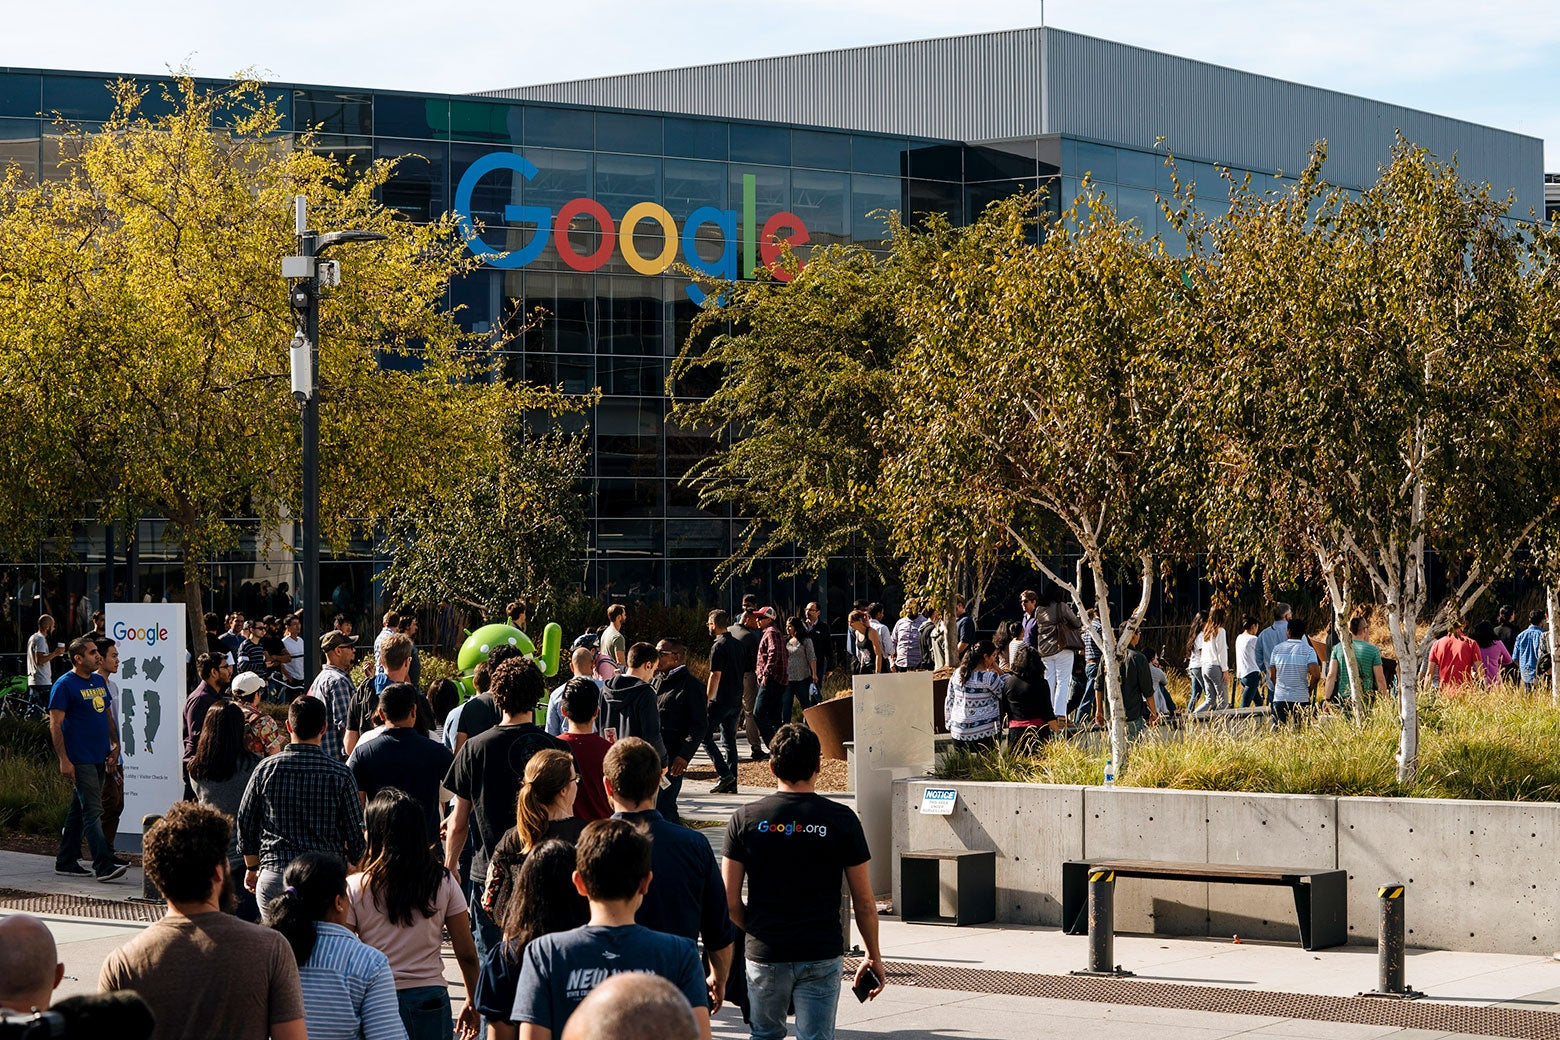 Google employees walk off the job to protest the company's handling of sexual misconduct claims.